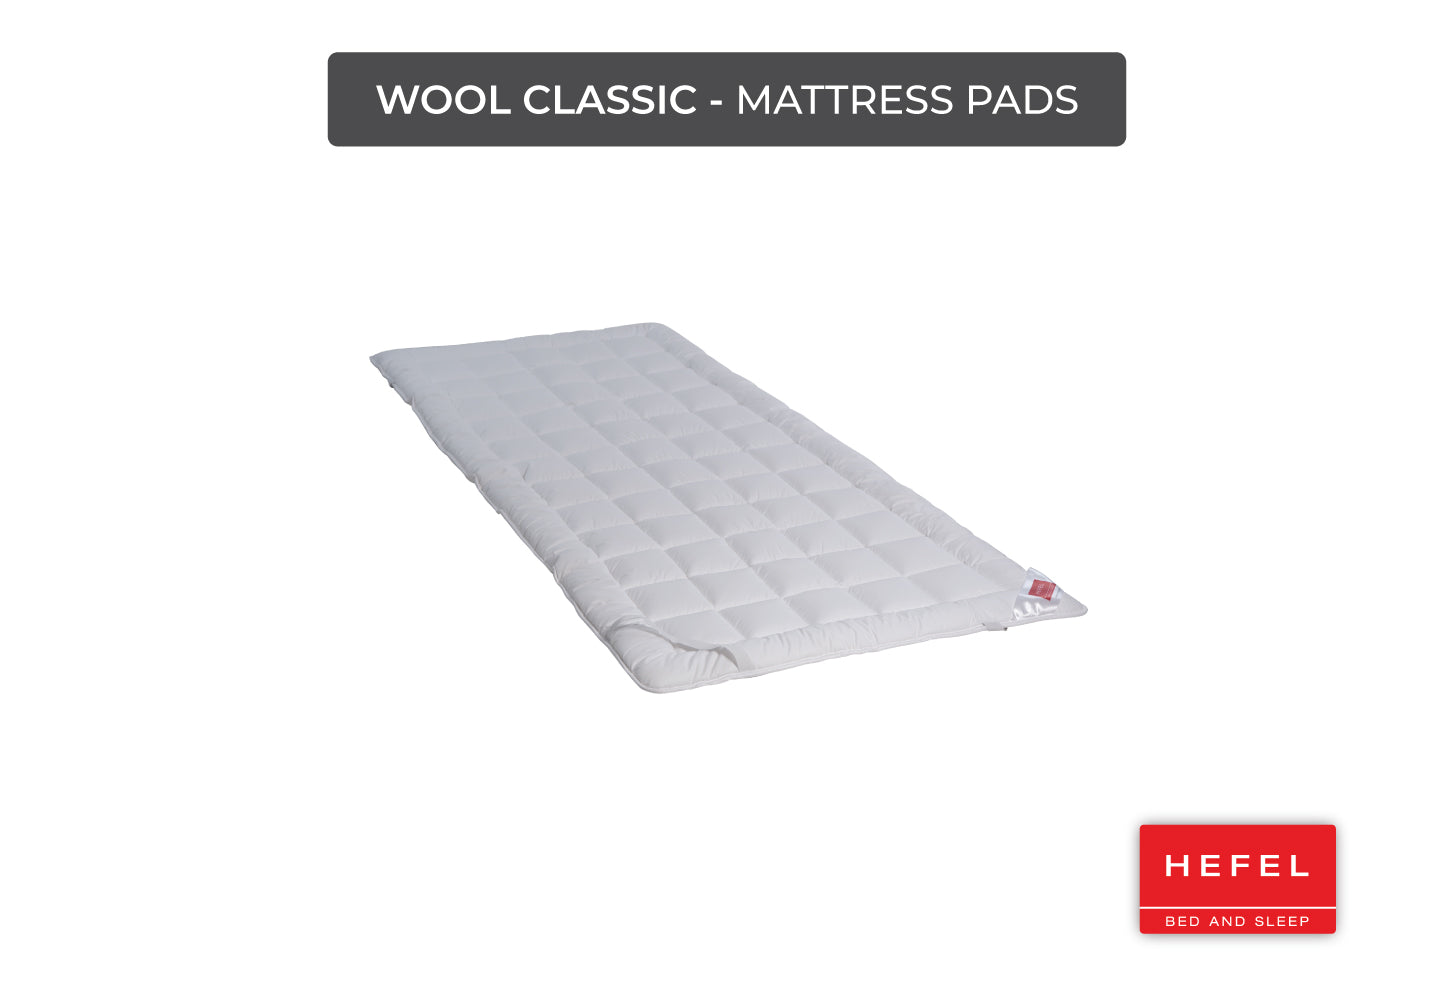 Wool Classic - Mattress Pads